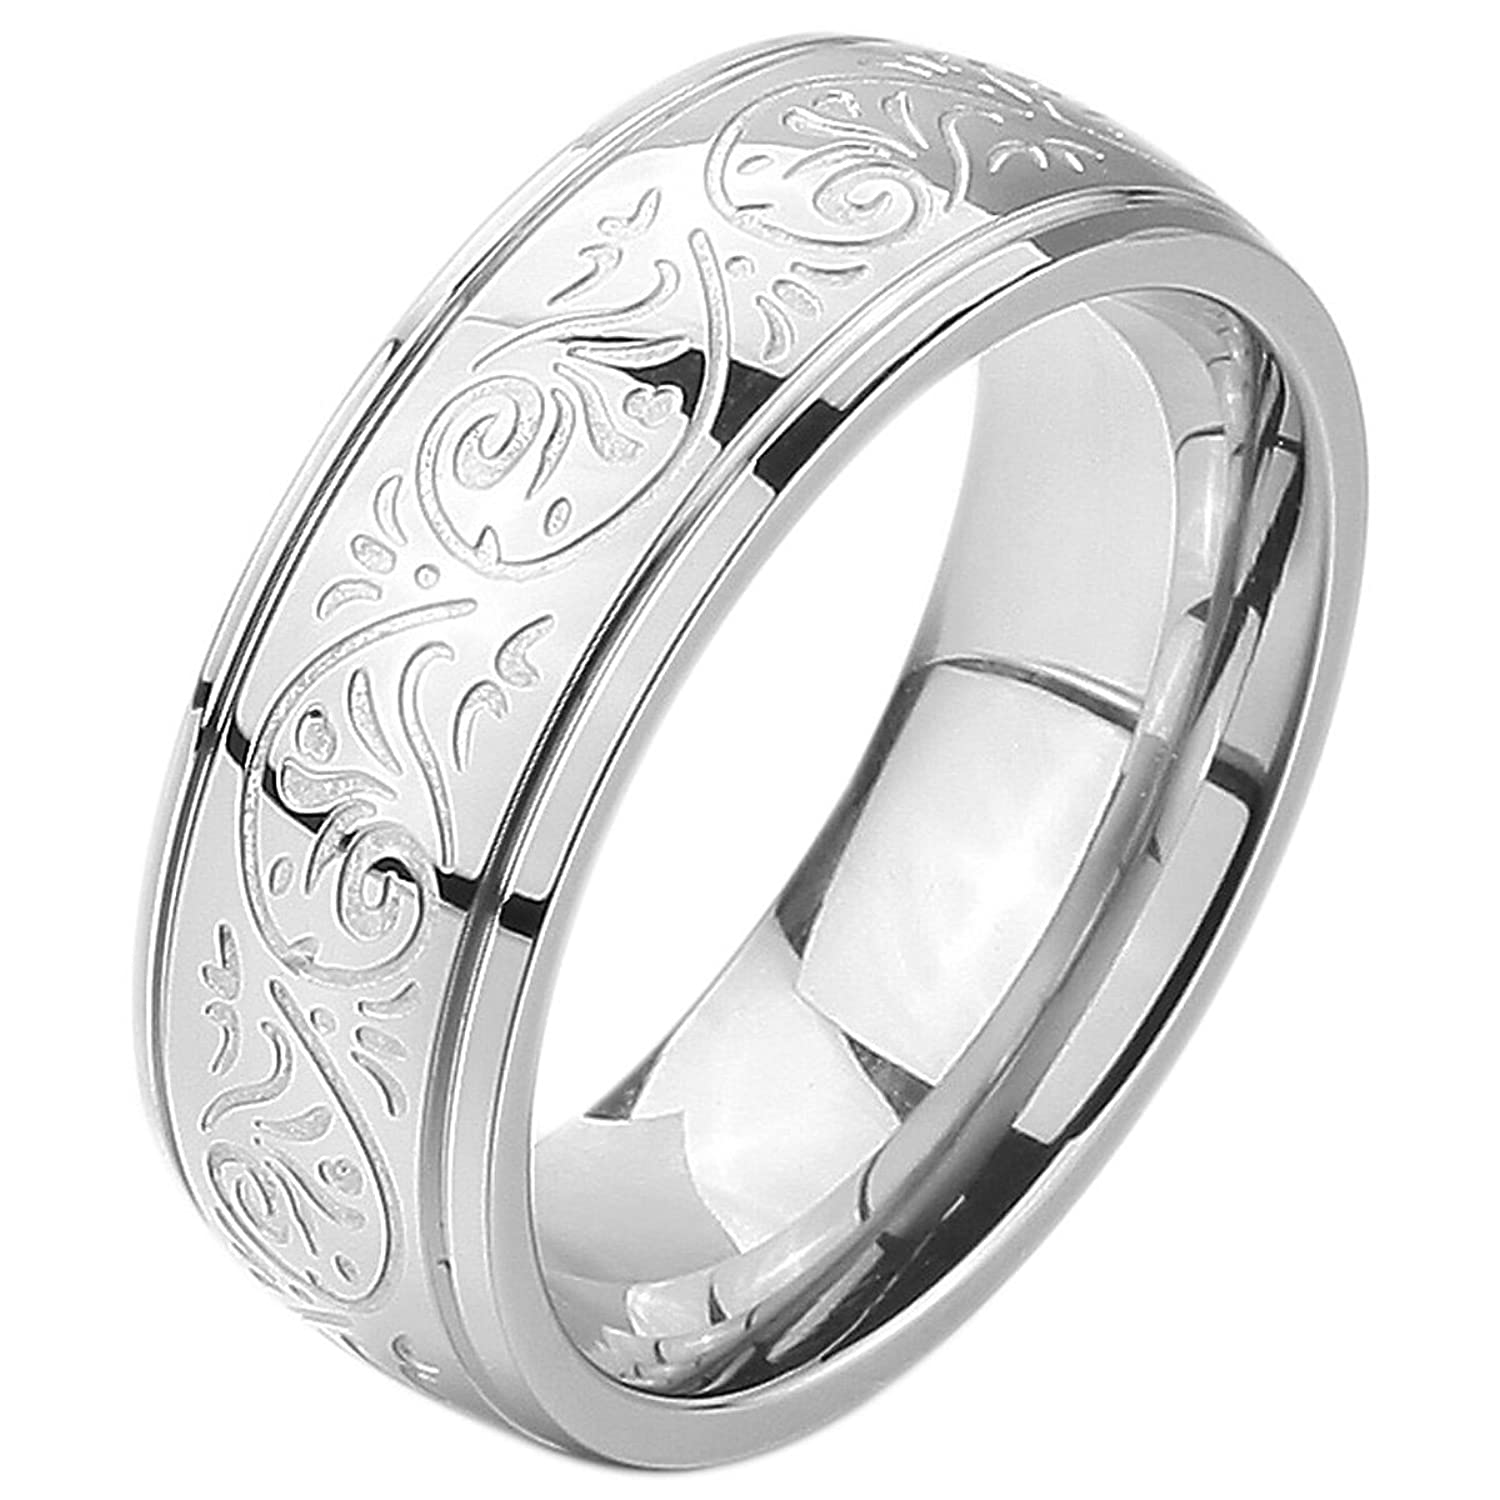 INBLUE Men s 7mm Stainless Steel Ring Band Silver Tone Engraved